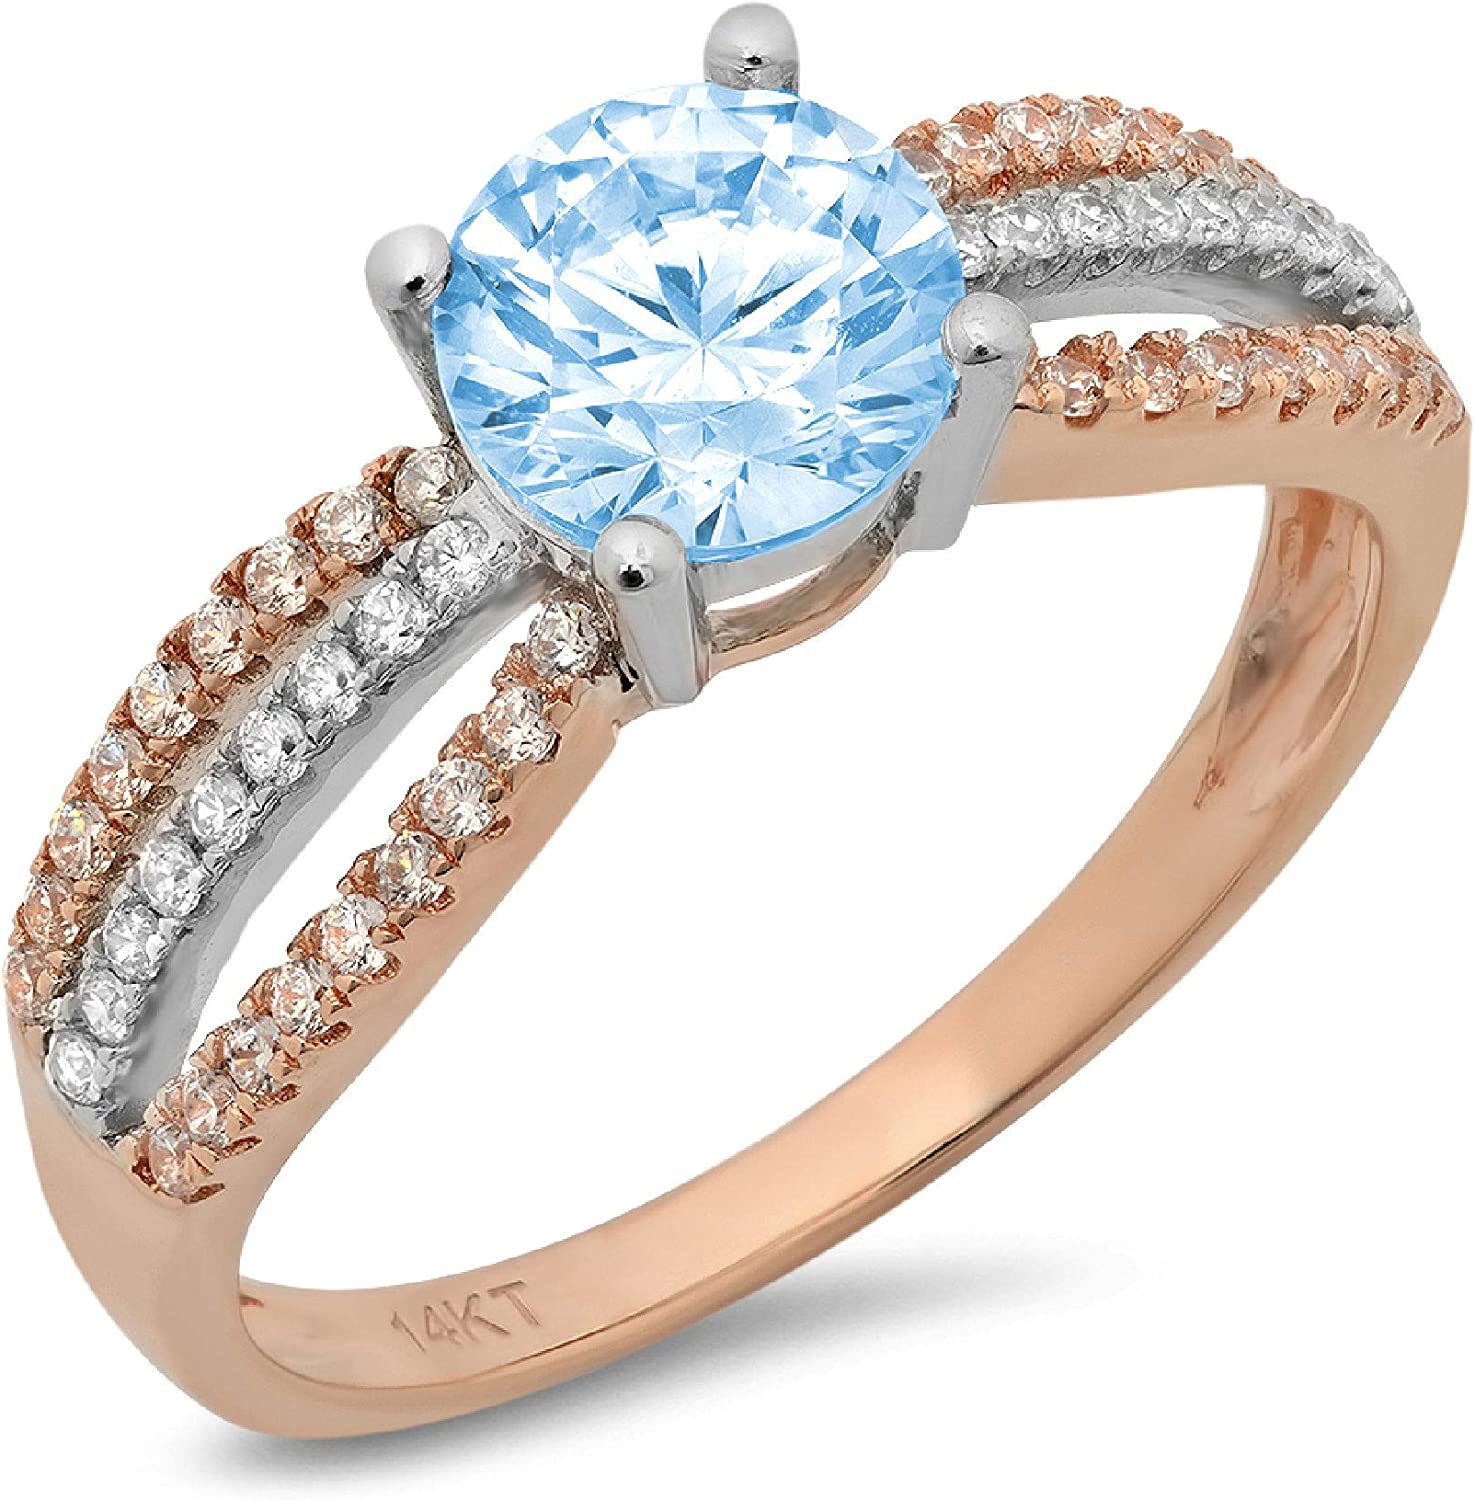 Clara Pucci 1.35 ct All items online shop free shipping Round Accent Genuine Cut Stunning Solitaire